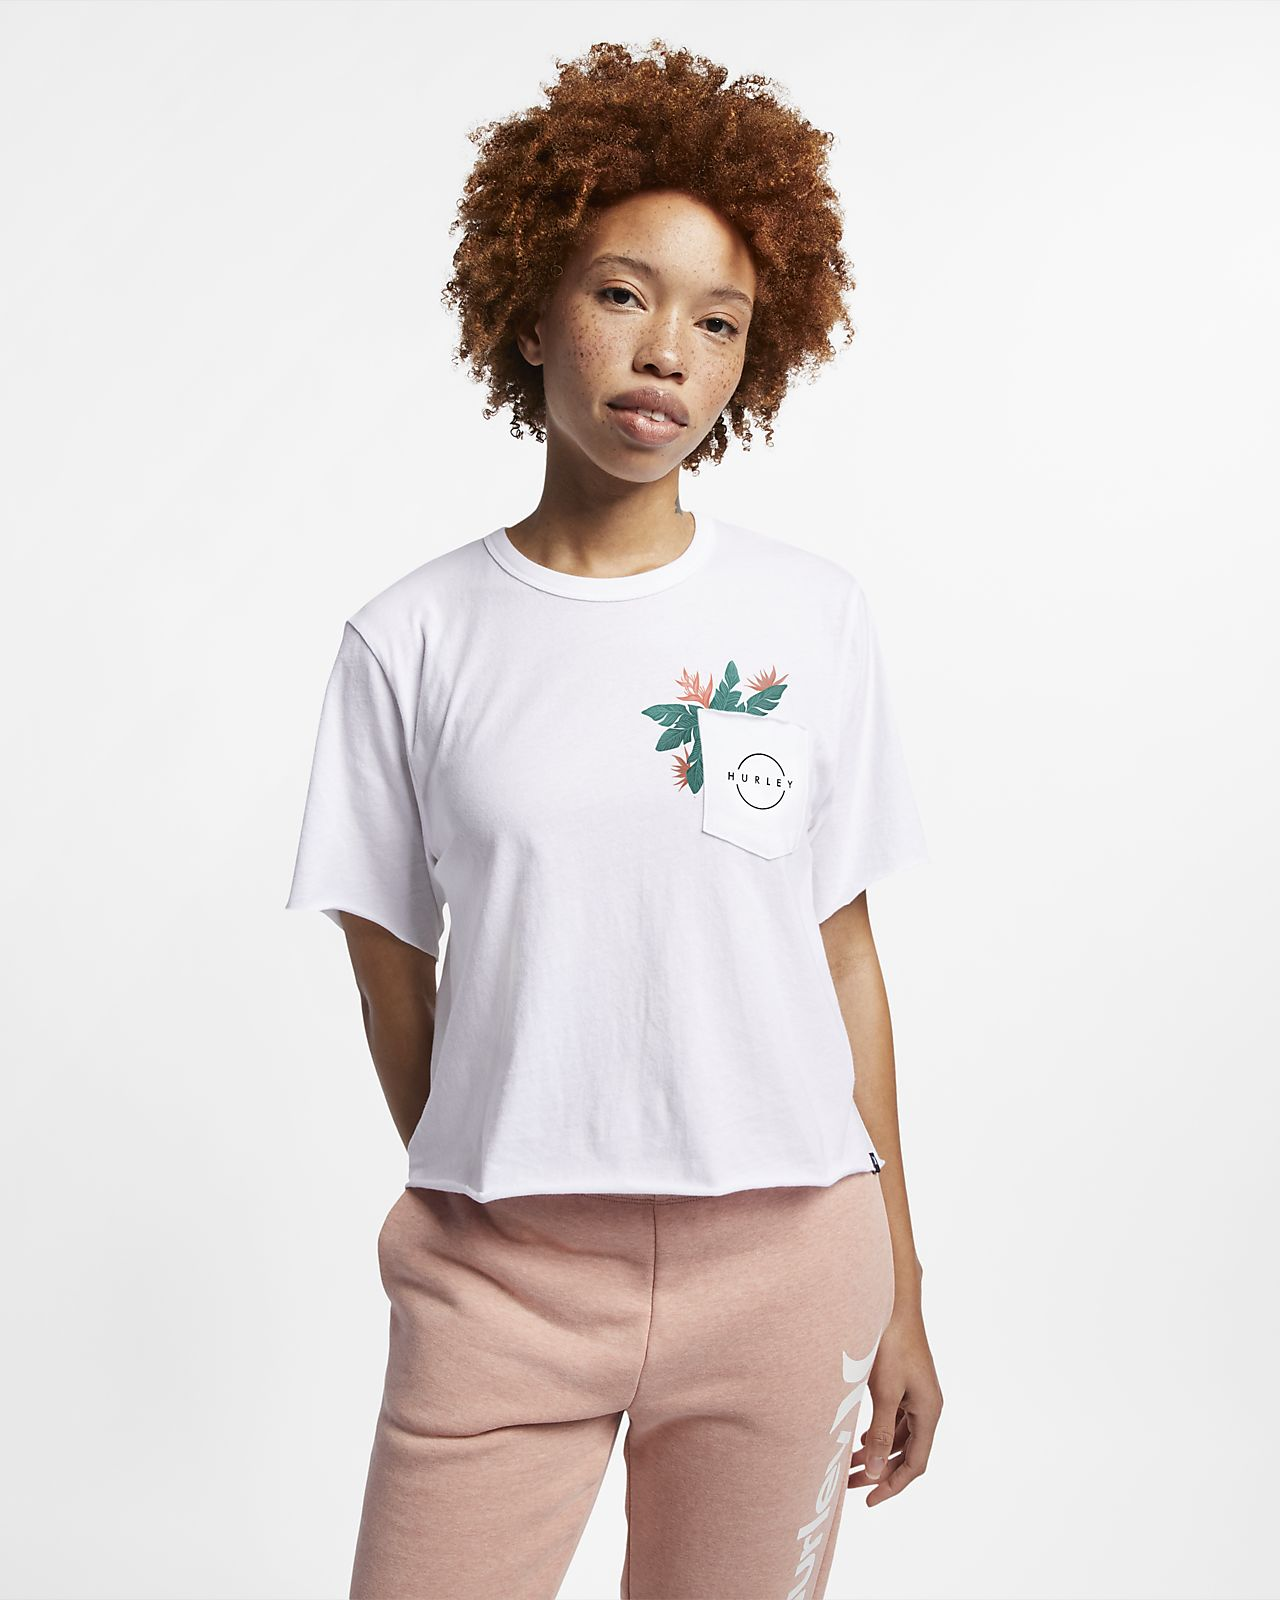 Hurley Hanoi Pocket Women's Crop T-Shirt